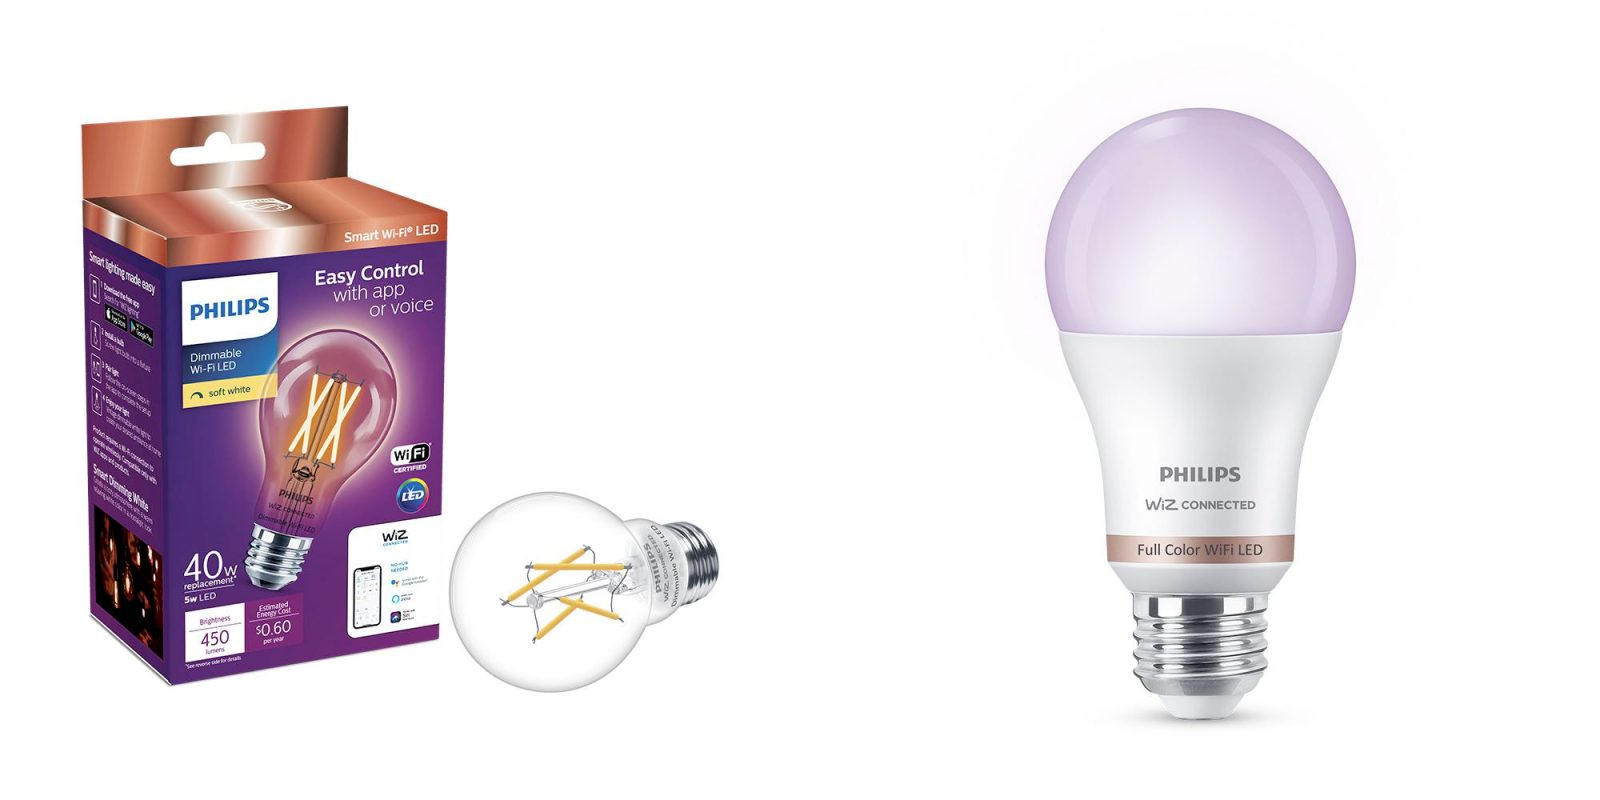 Philips' WiZ smart bulb platform offers Wi-Fi control from $10